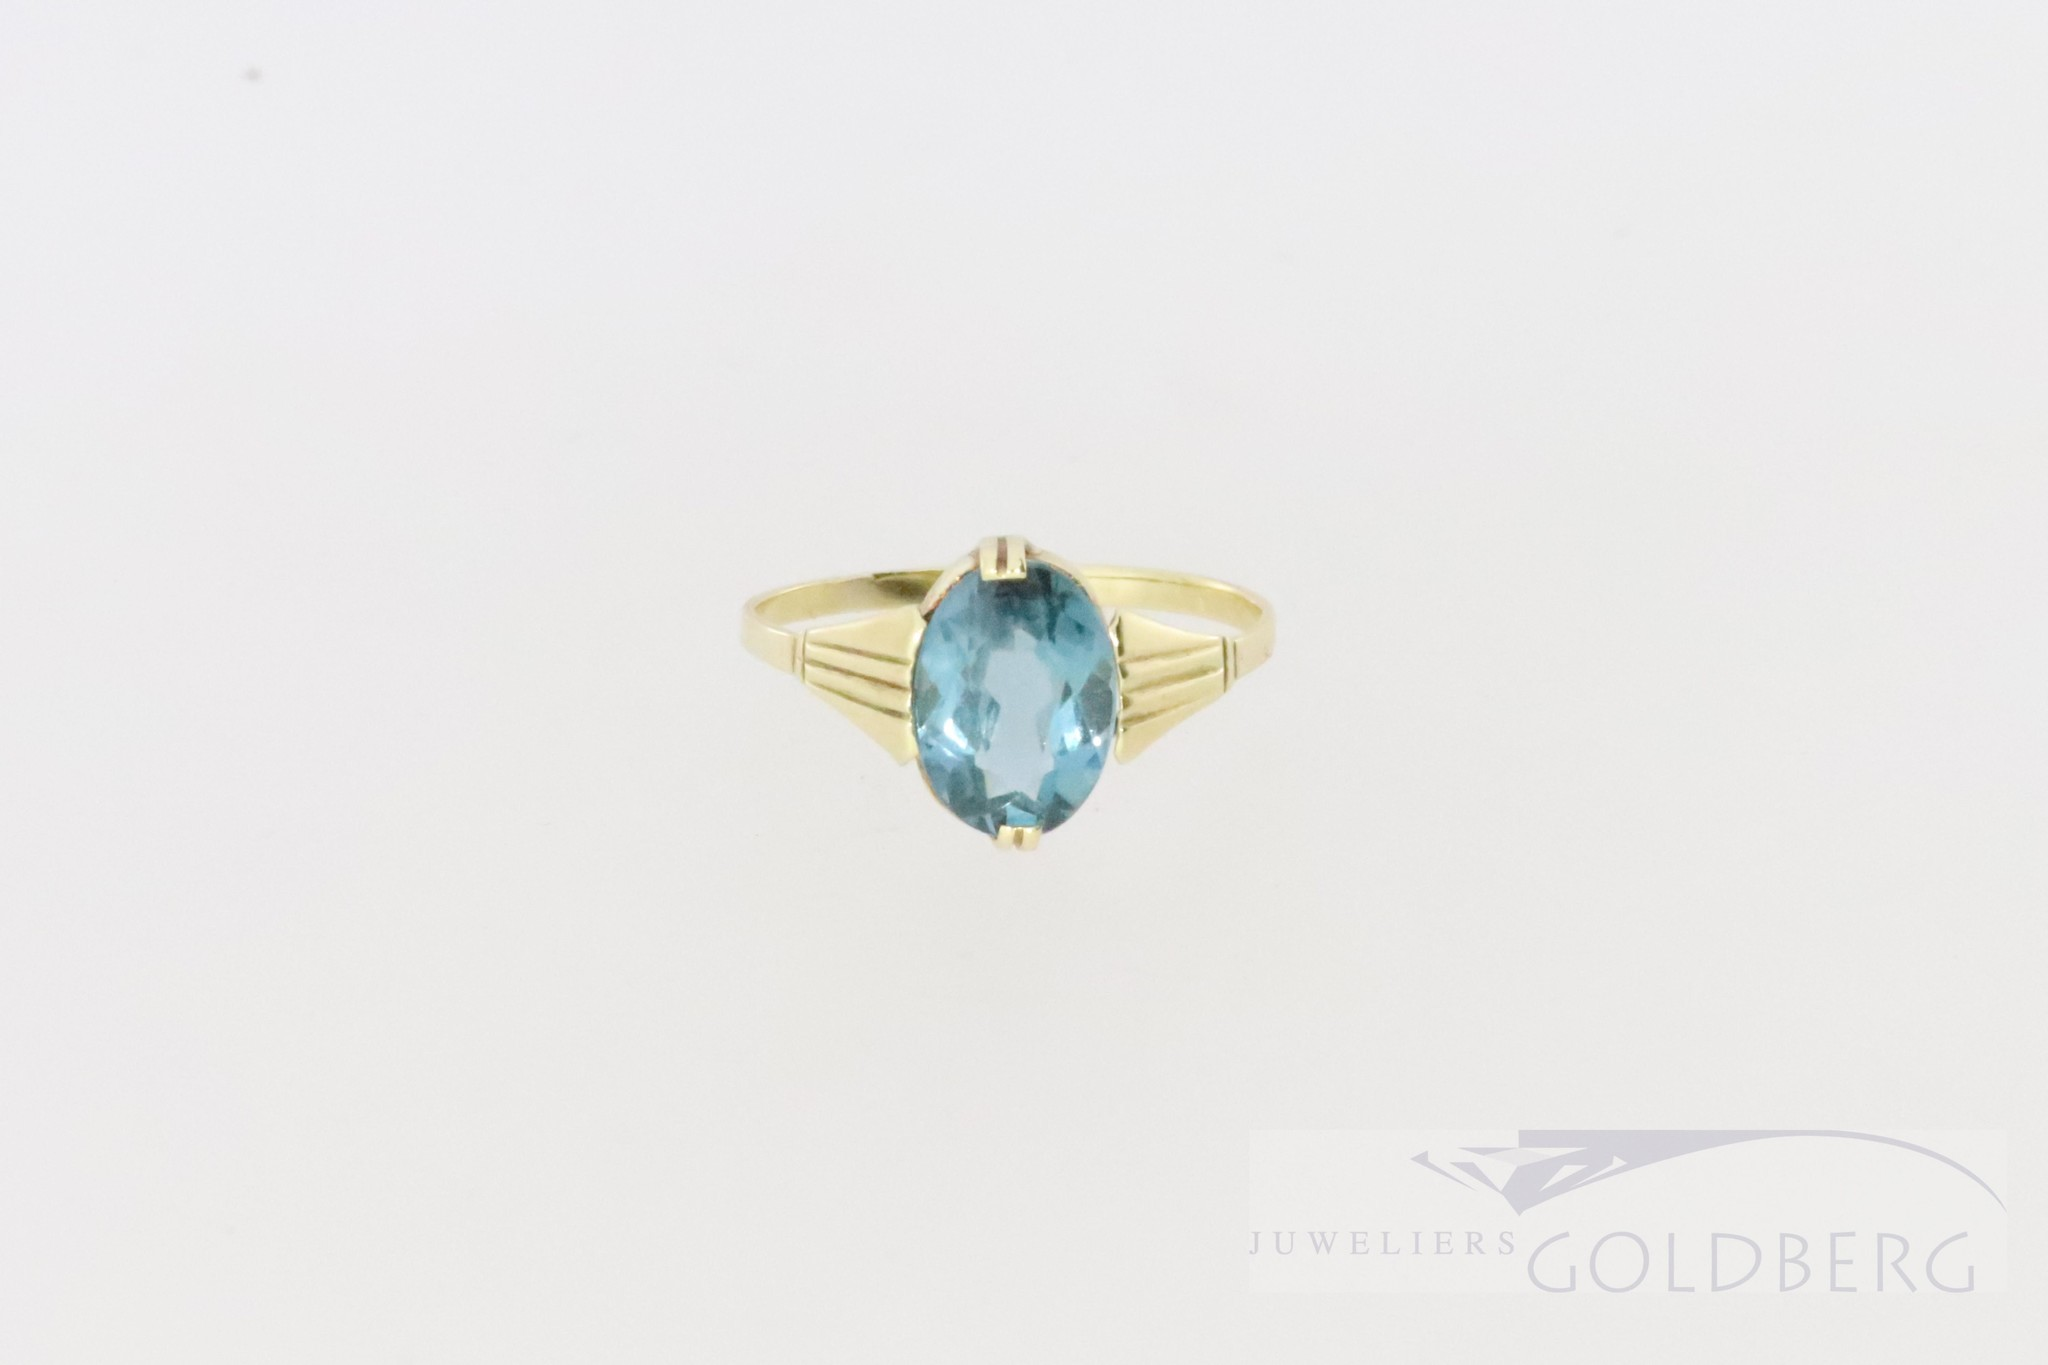 Antique 14k cute little ring with blue spinel.